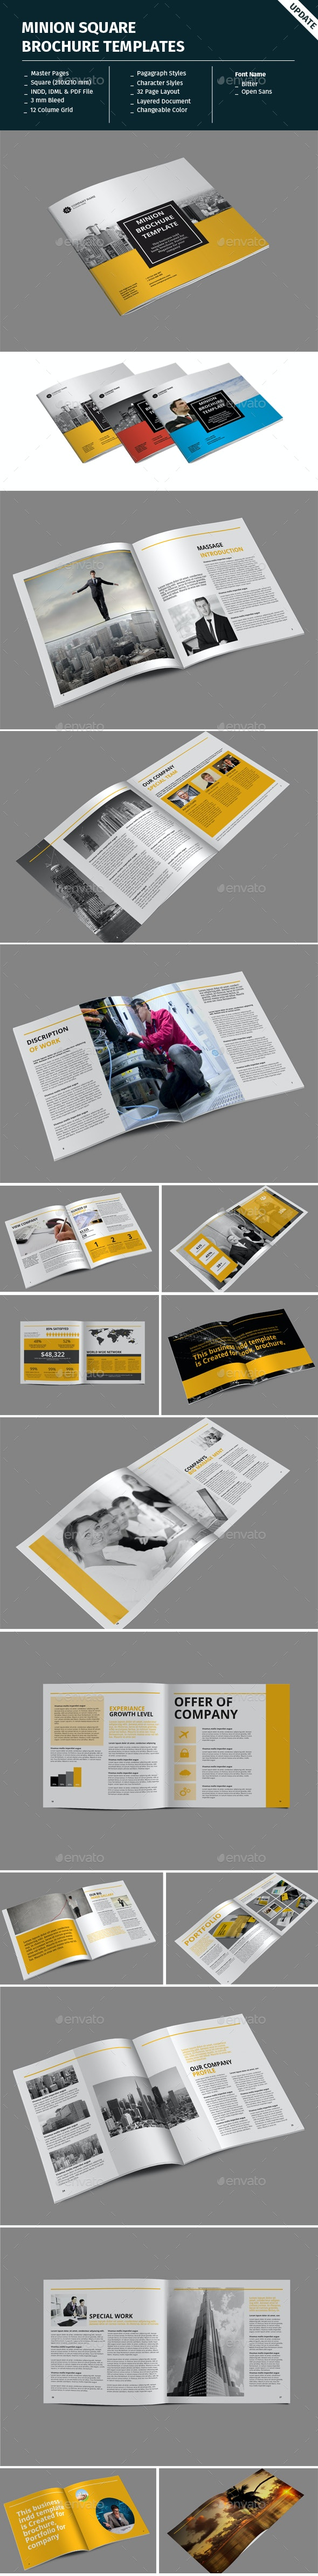 Minion Square Brochure Templates - Corporate Brochures